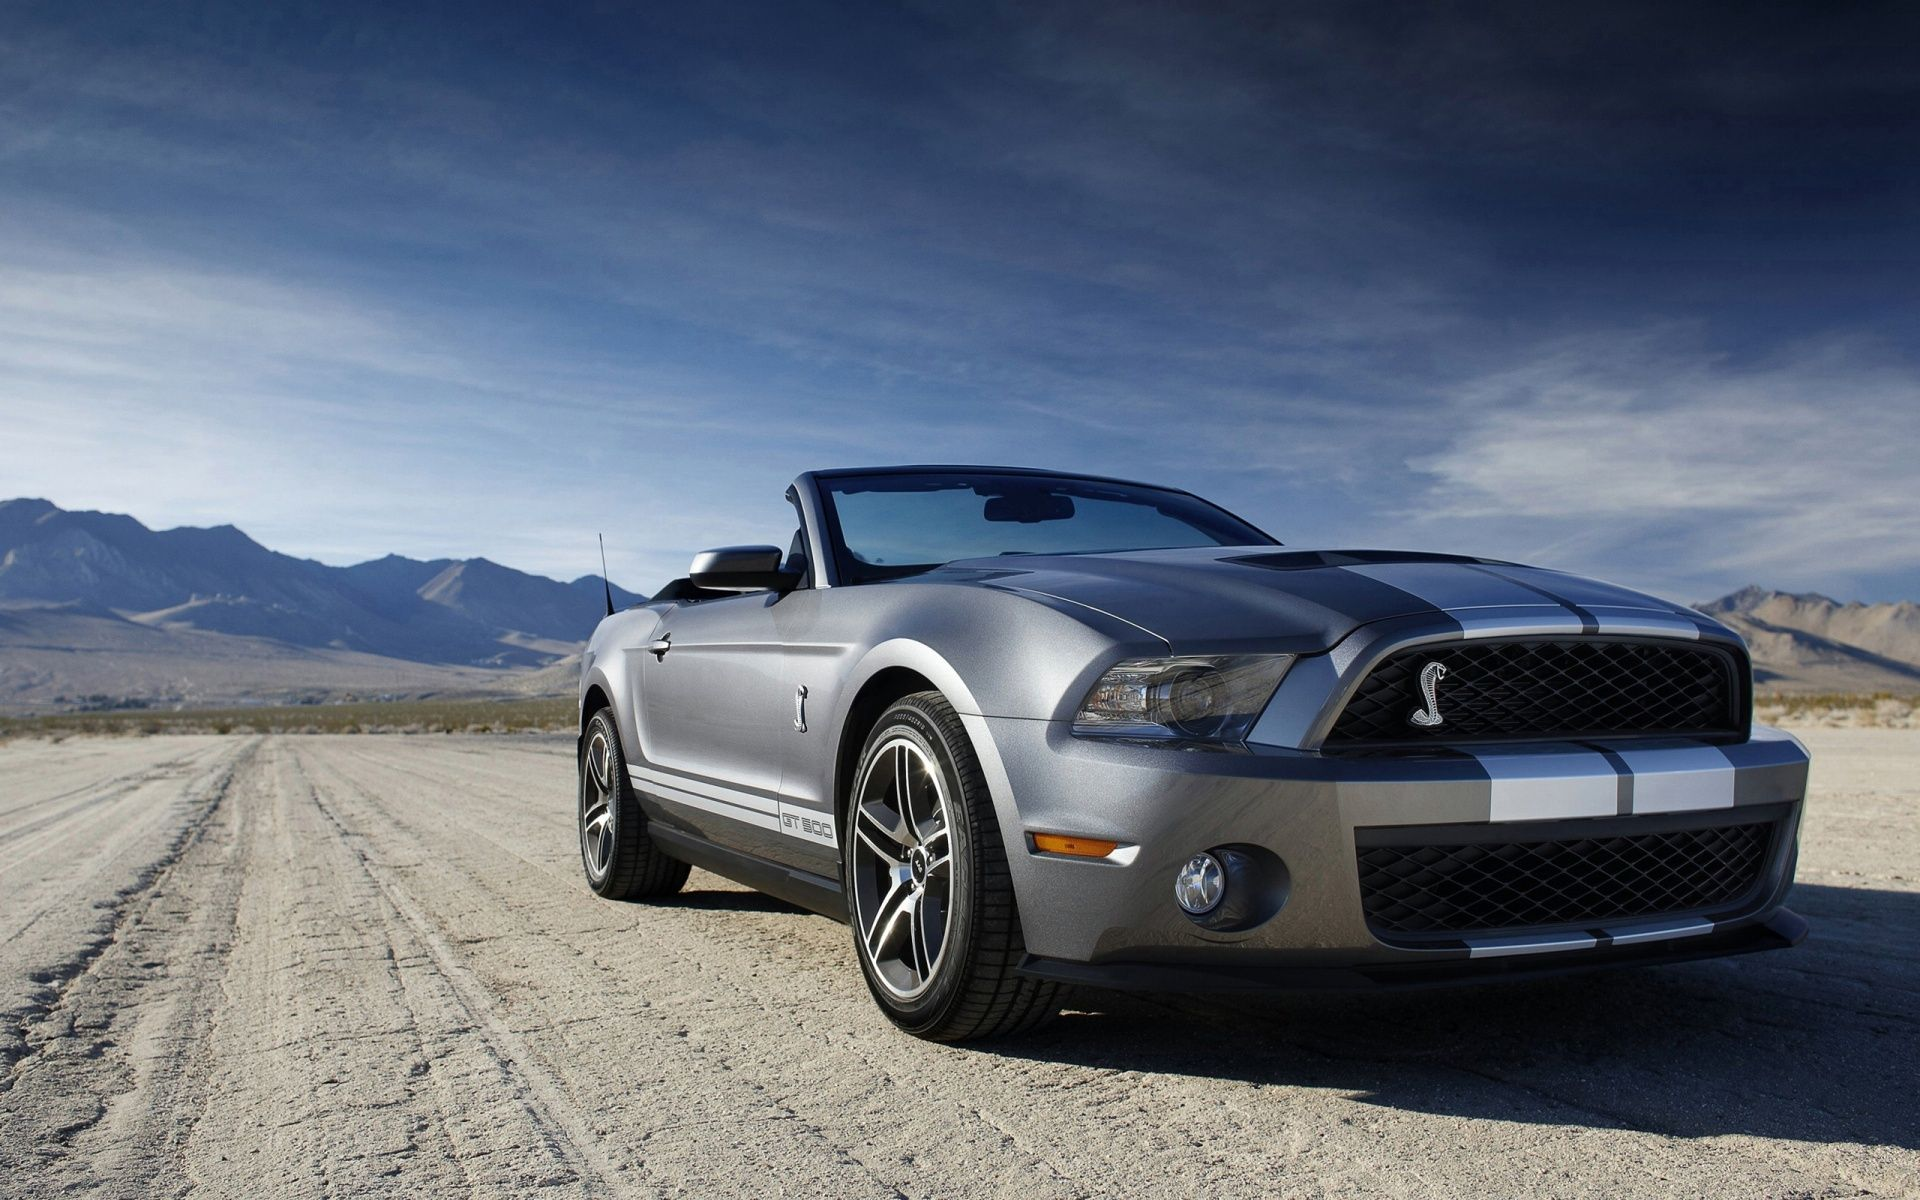 Ford Shelby Mustang Gt 500 Wallpaper Cas Wallpaper Hd Ford